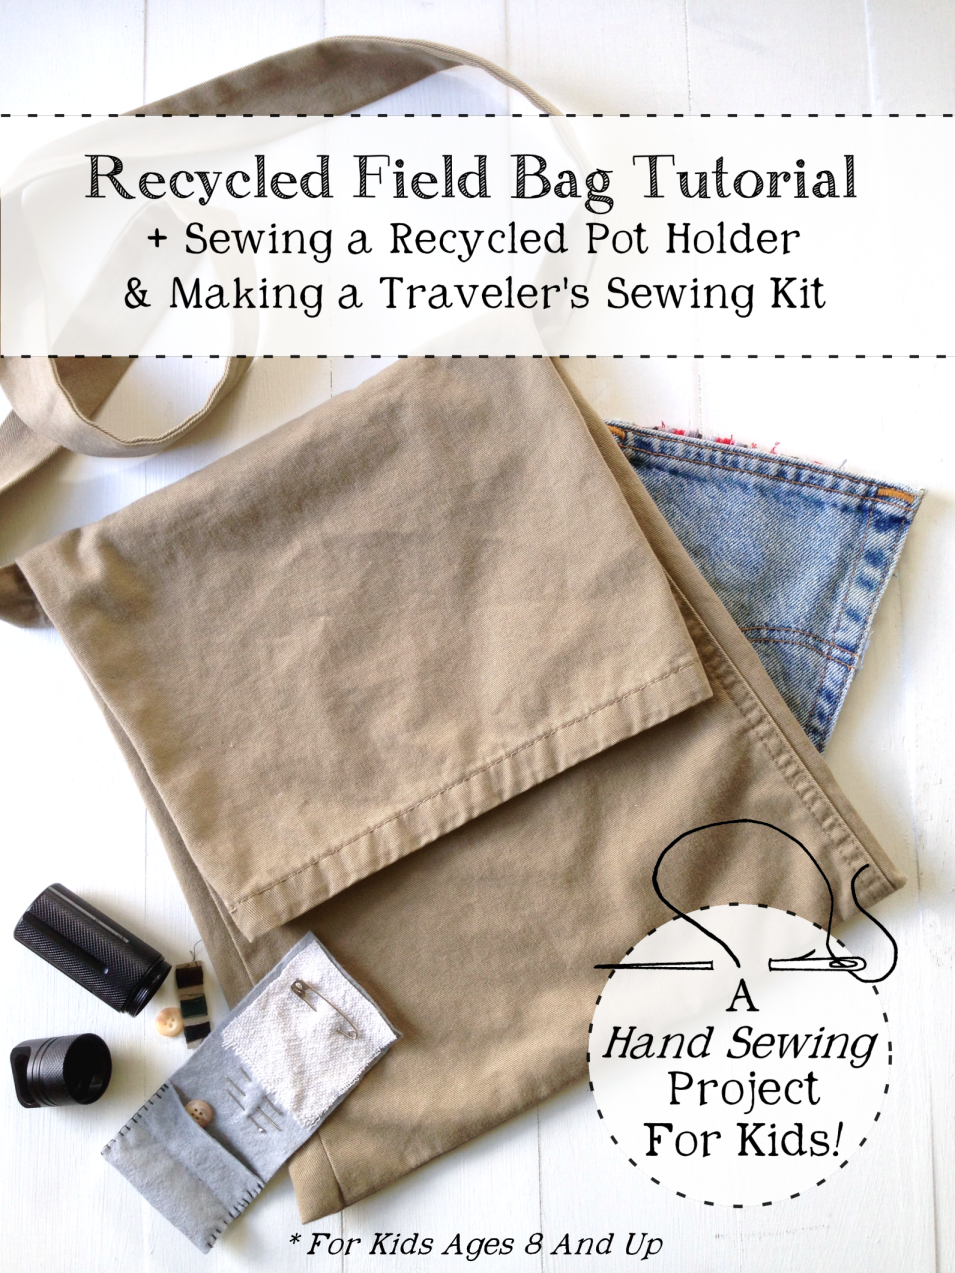 - A Kid's Sewing Project